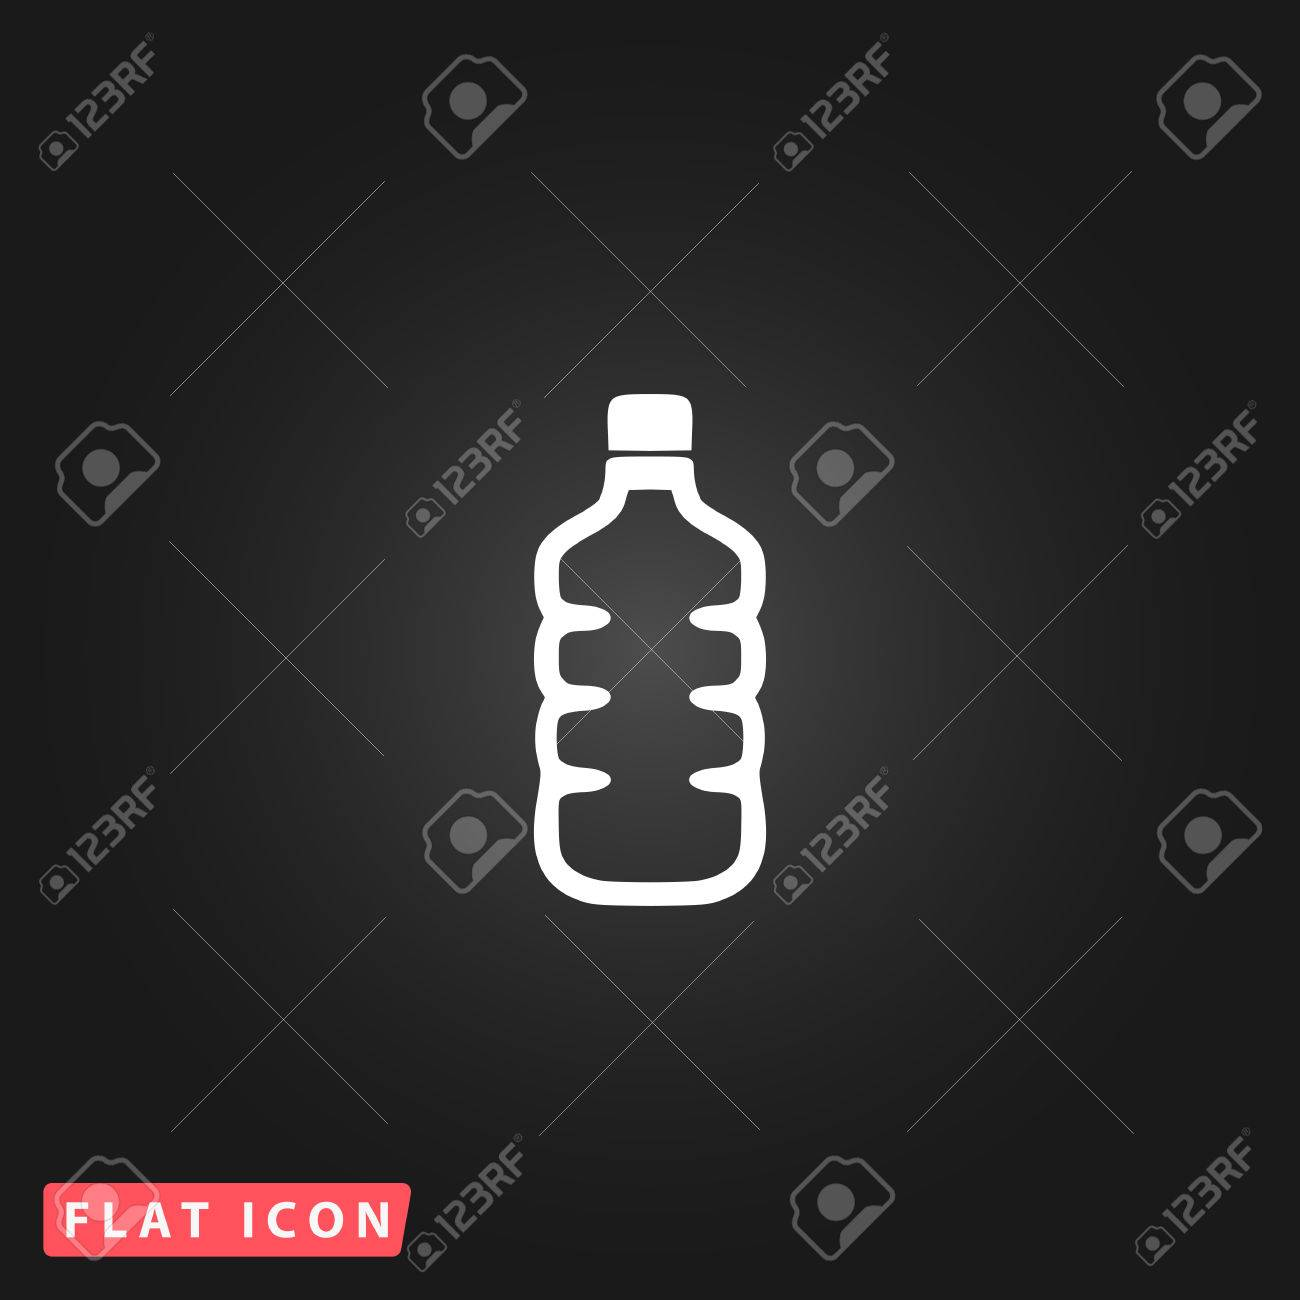 Plastic Water Bottle White Flat Simple Vector Icon On Black